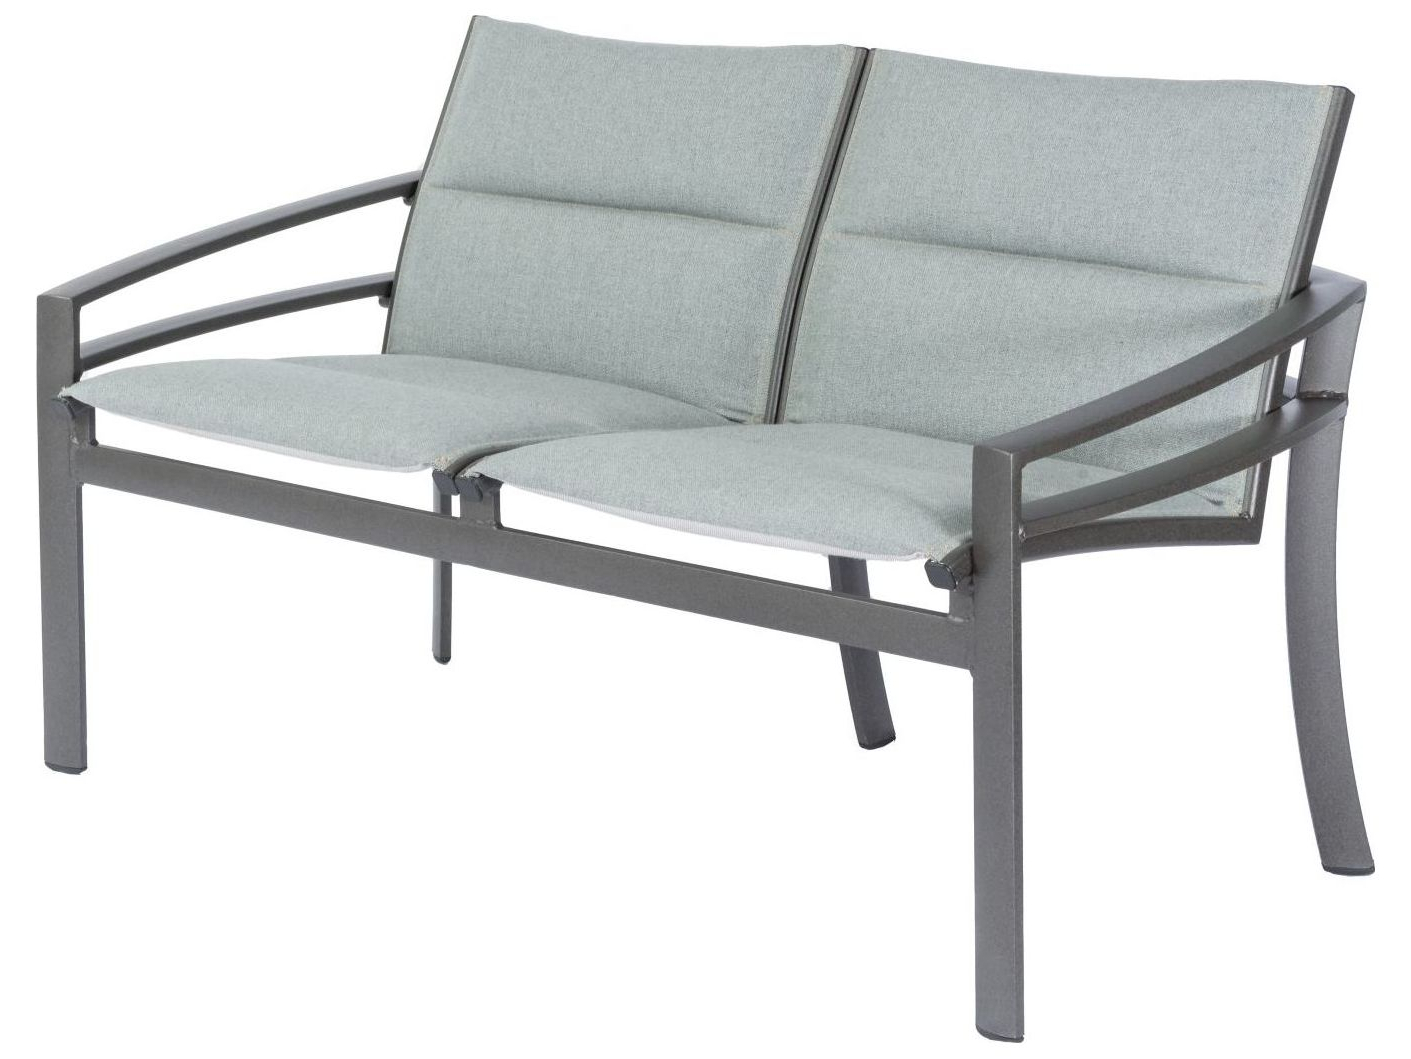 Most Recent Tropitone Kor Padded Sling Aluminum Loveseat With Regard To Padded Sling Double Glider Benches (View 27 of 30)